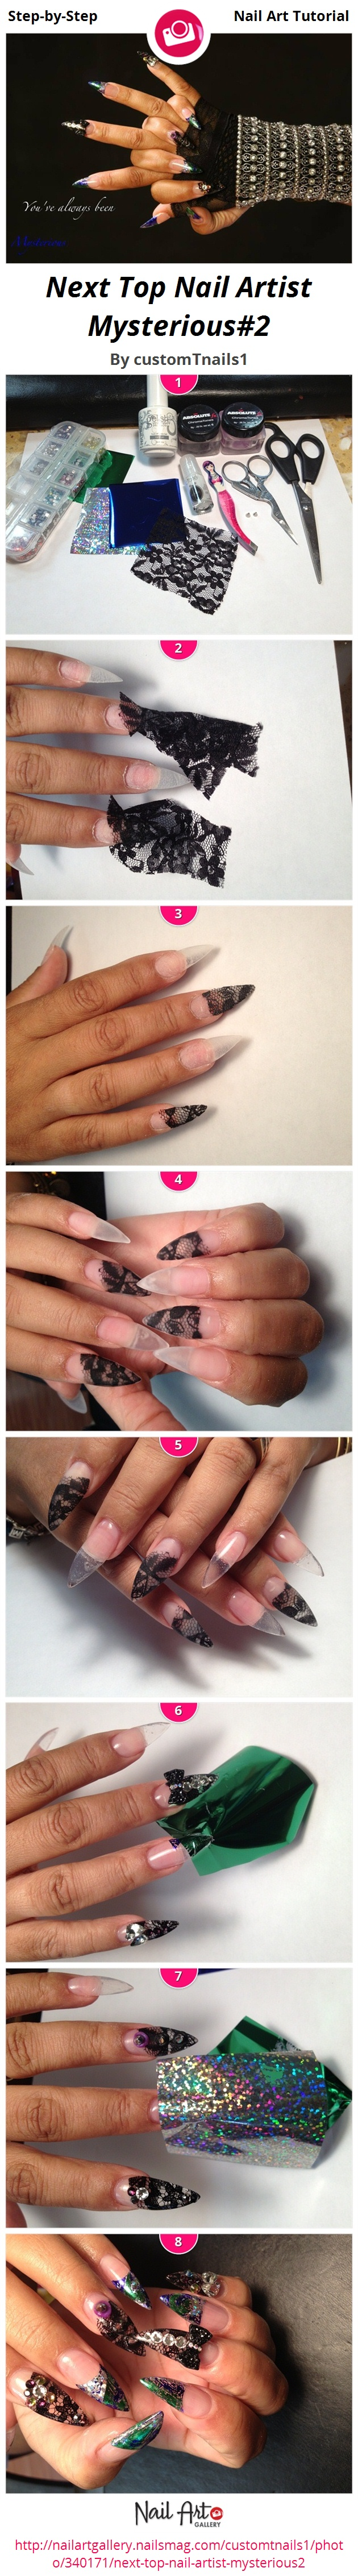 Next Top Nail Artist Mysterious#2 - Nail Art Gallery